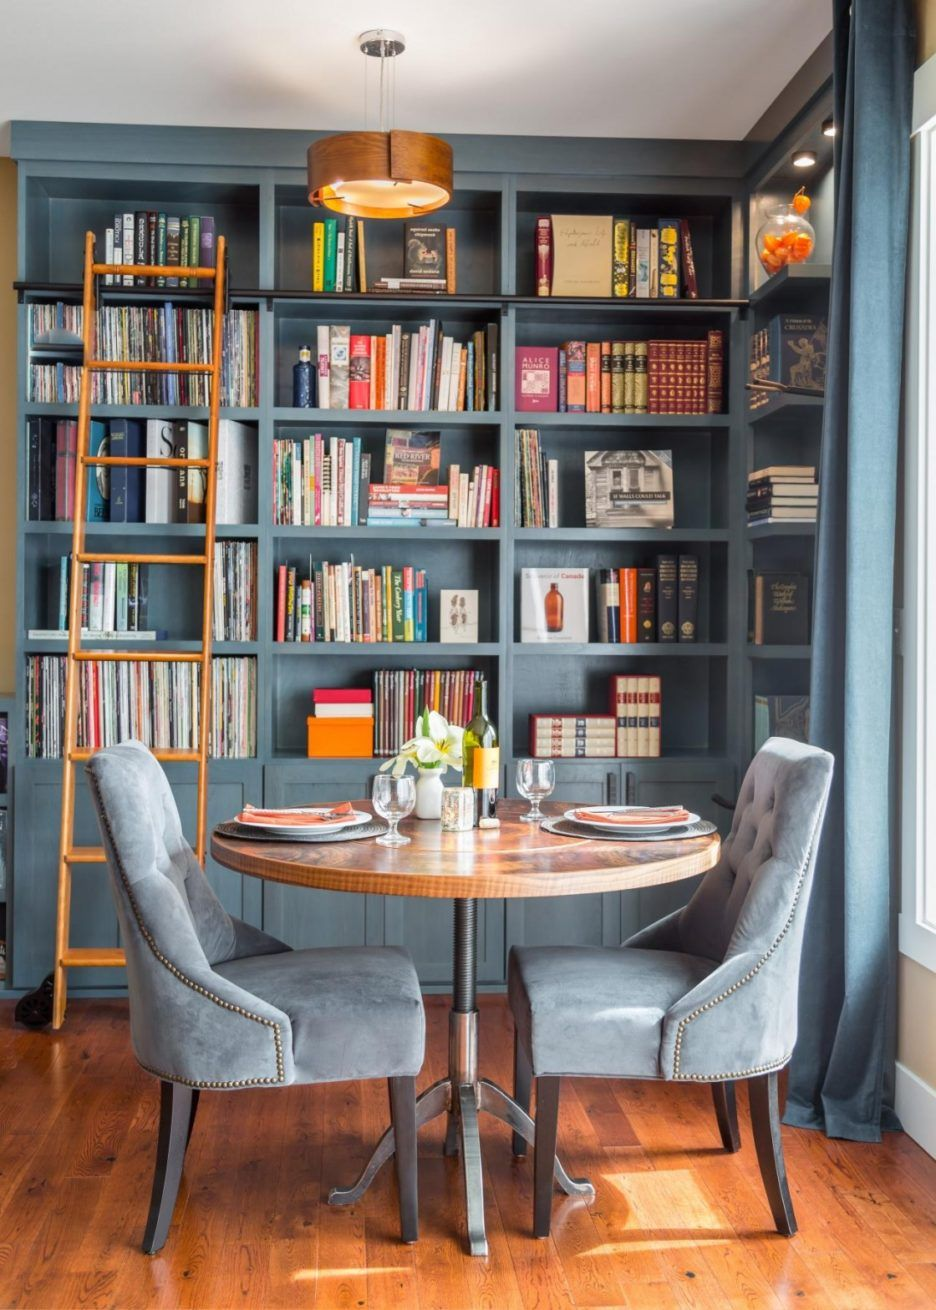 Reading Room Design Ideas: Home › Home Design › Exquisite